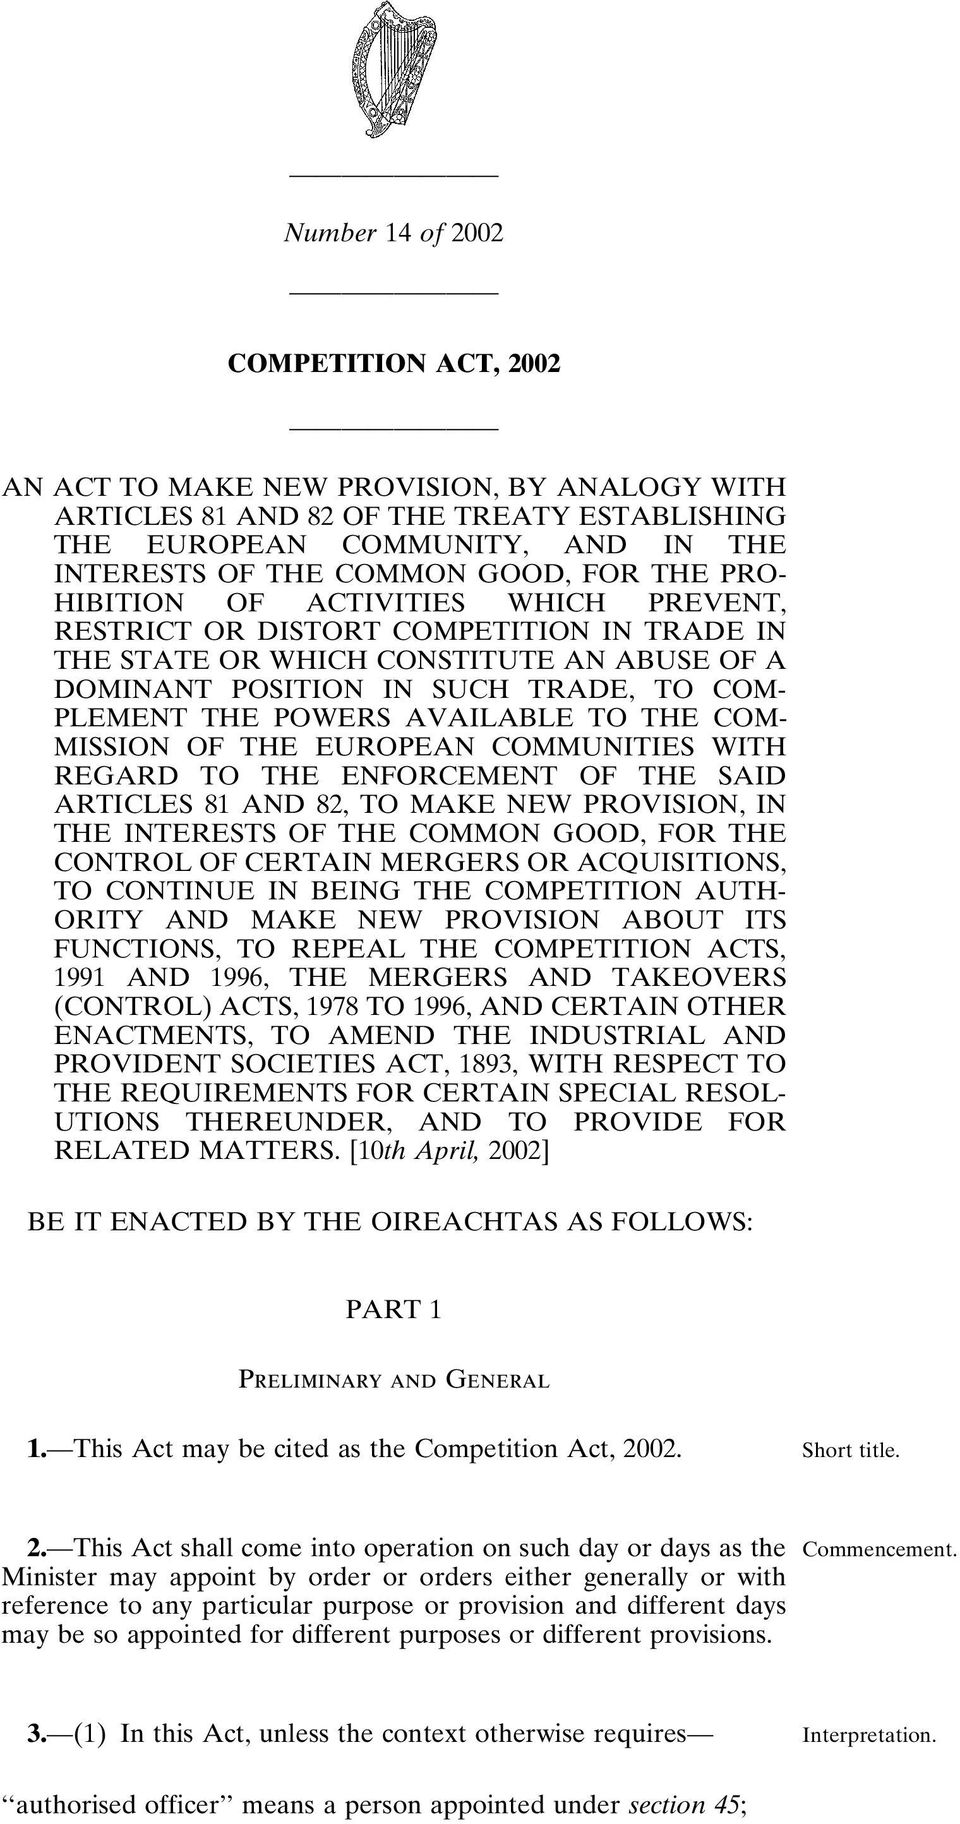 AVAILABLE TO THE COM- MISSION OF THE EUROPEAN COMMUNITIES WITH REGARD TO THE ENFORCEMENT OF THE SAID ARTICLES 81 AND 82, TO MAKE NEW PROVISION, IN THE INTERESTS OF THE COMMON GOOD, FOR THE CONTROL OF